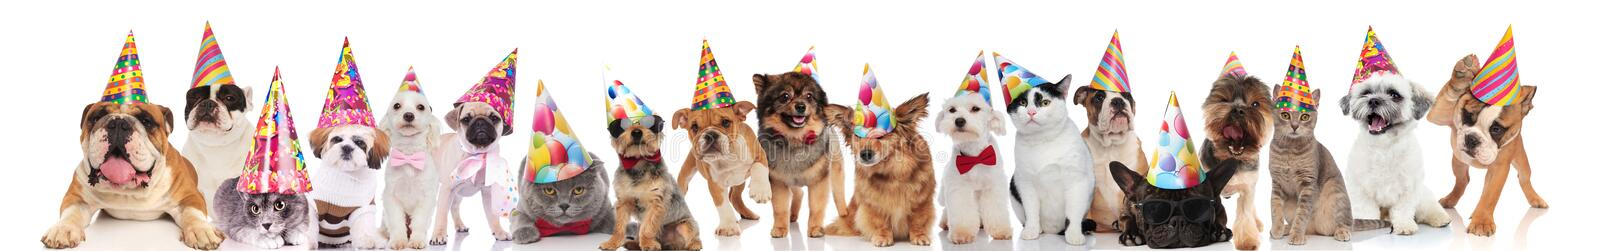 Cute group of many cats and dogs ready for party. Cute group of many cats and dogs ready for birthday party standing, sitting and lying on white background royalty free stock photo